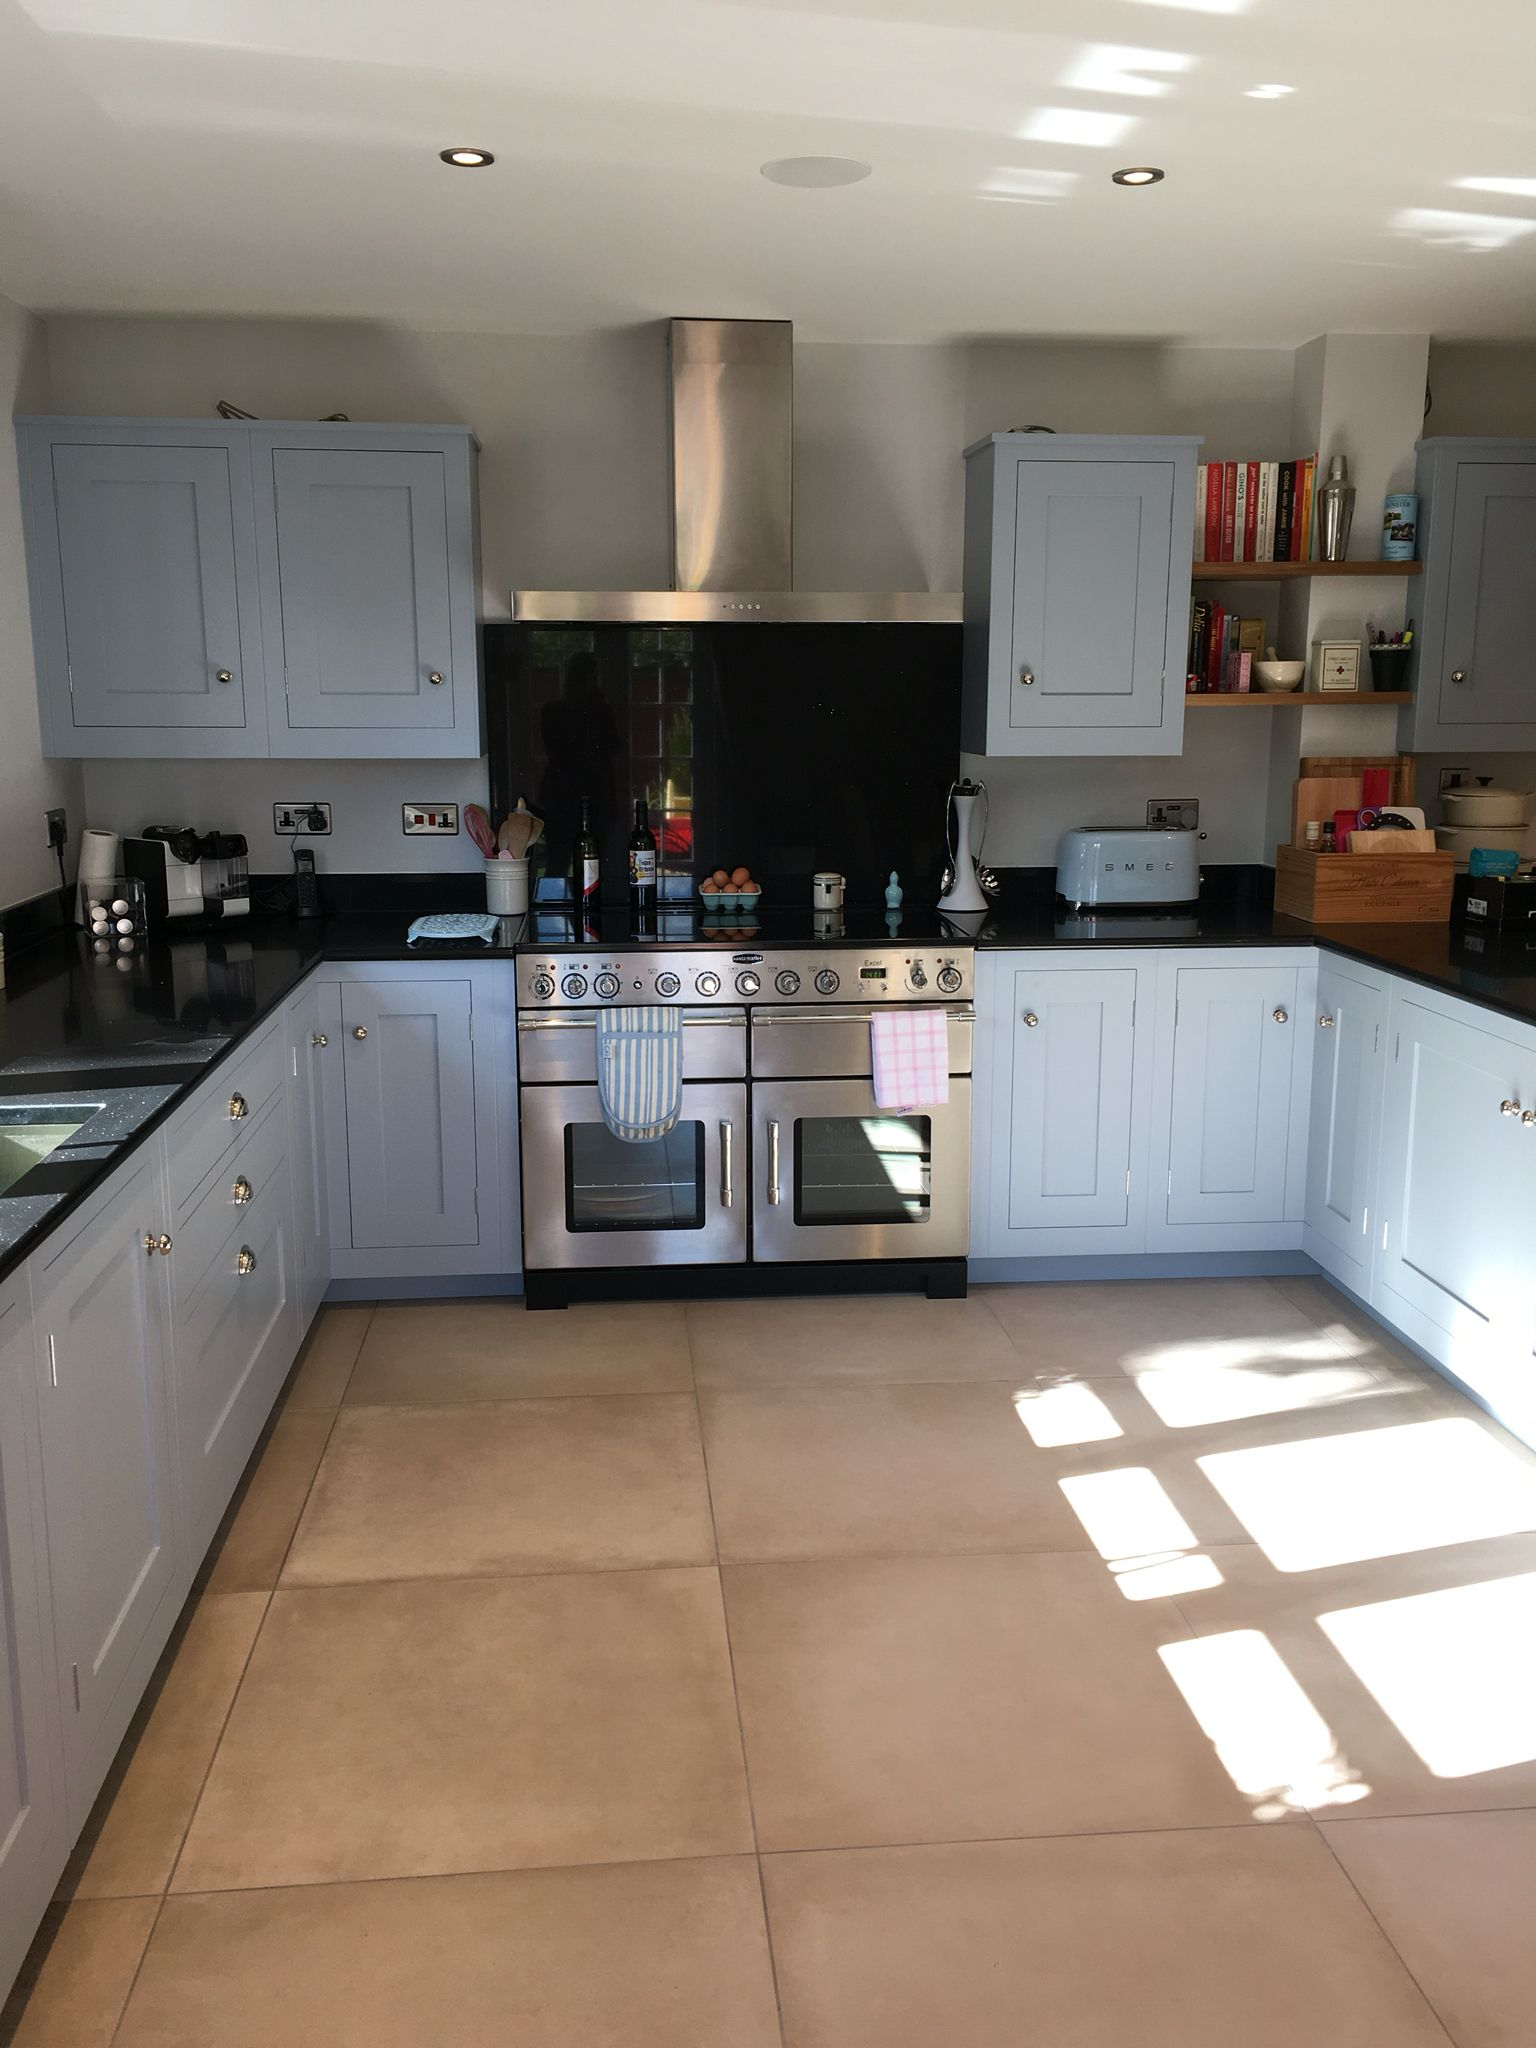 harvey jones shaker kitchen painted in farrow and ball parma grey